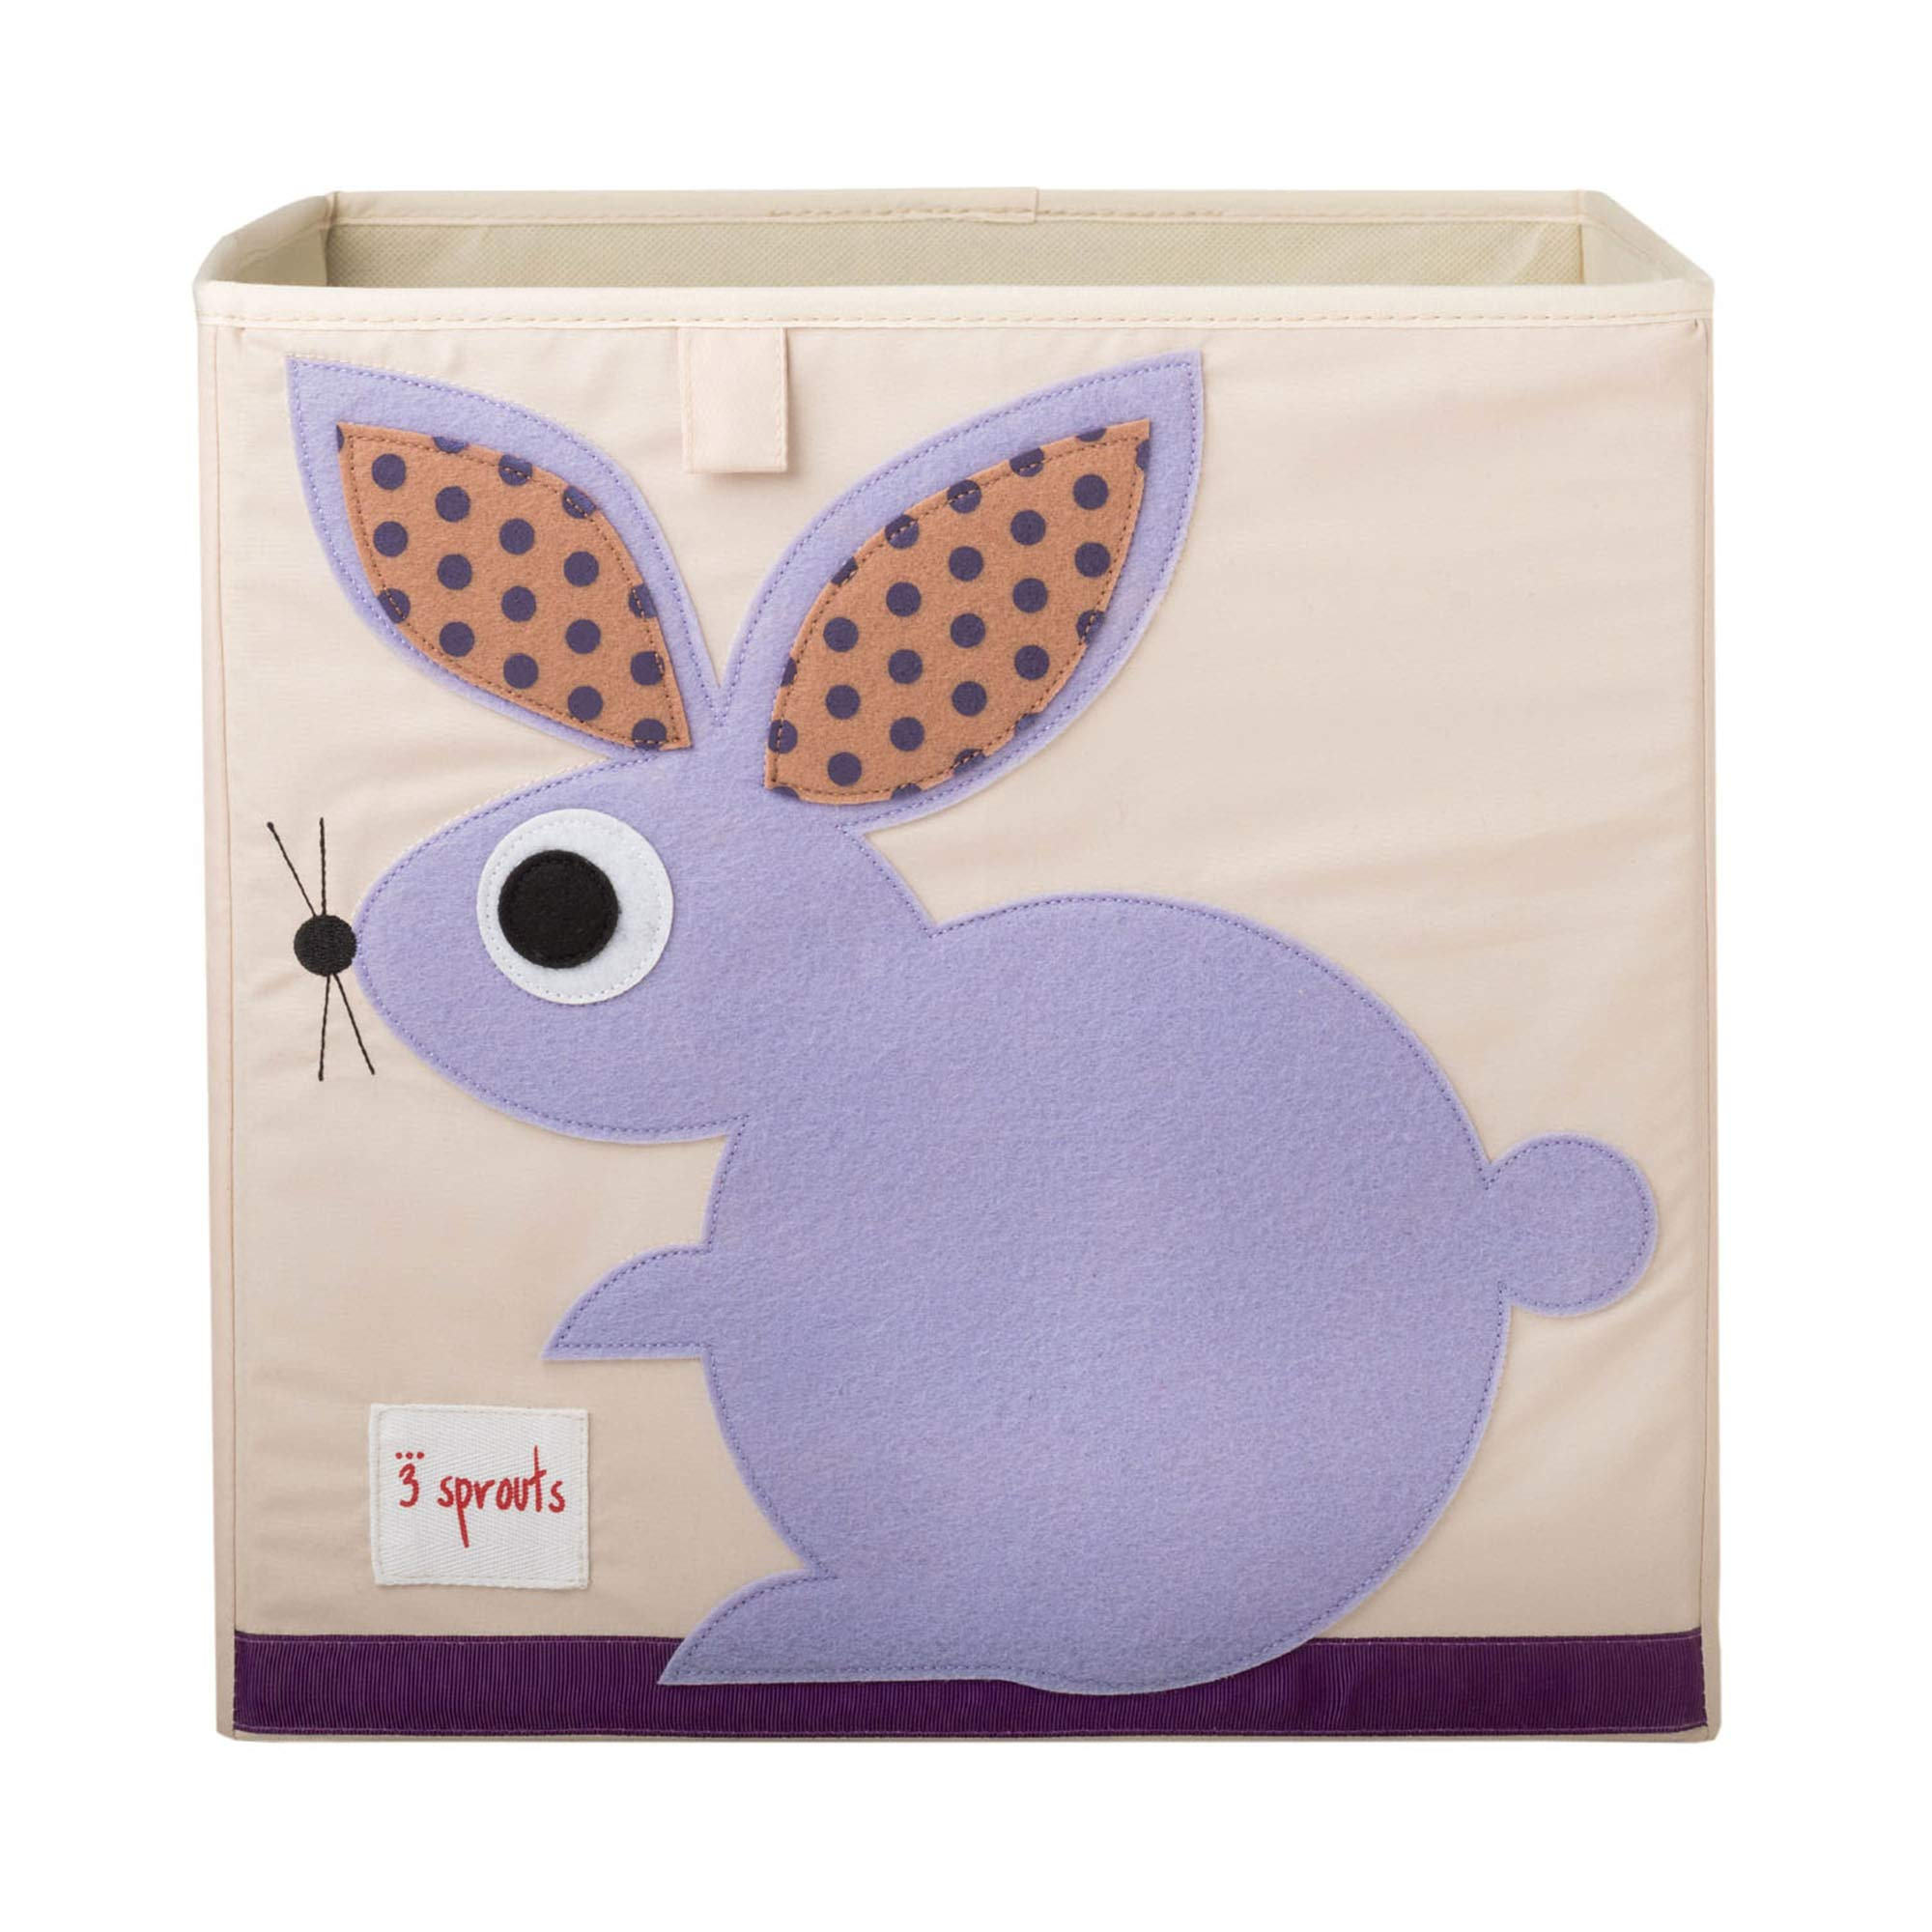 3 Sprouts Cube Storage Box - Organizer Container for Kids & Toddlers, Rabbit